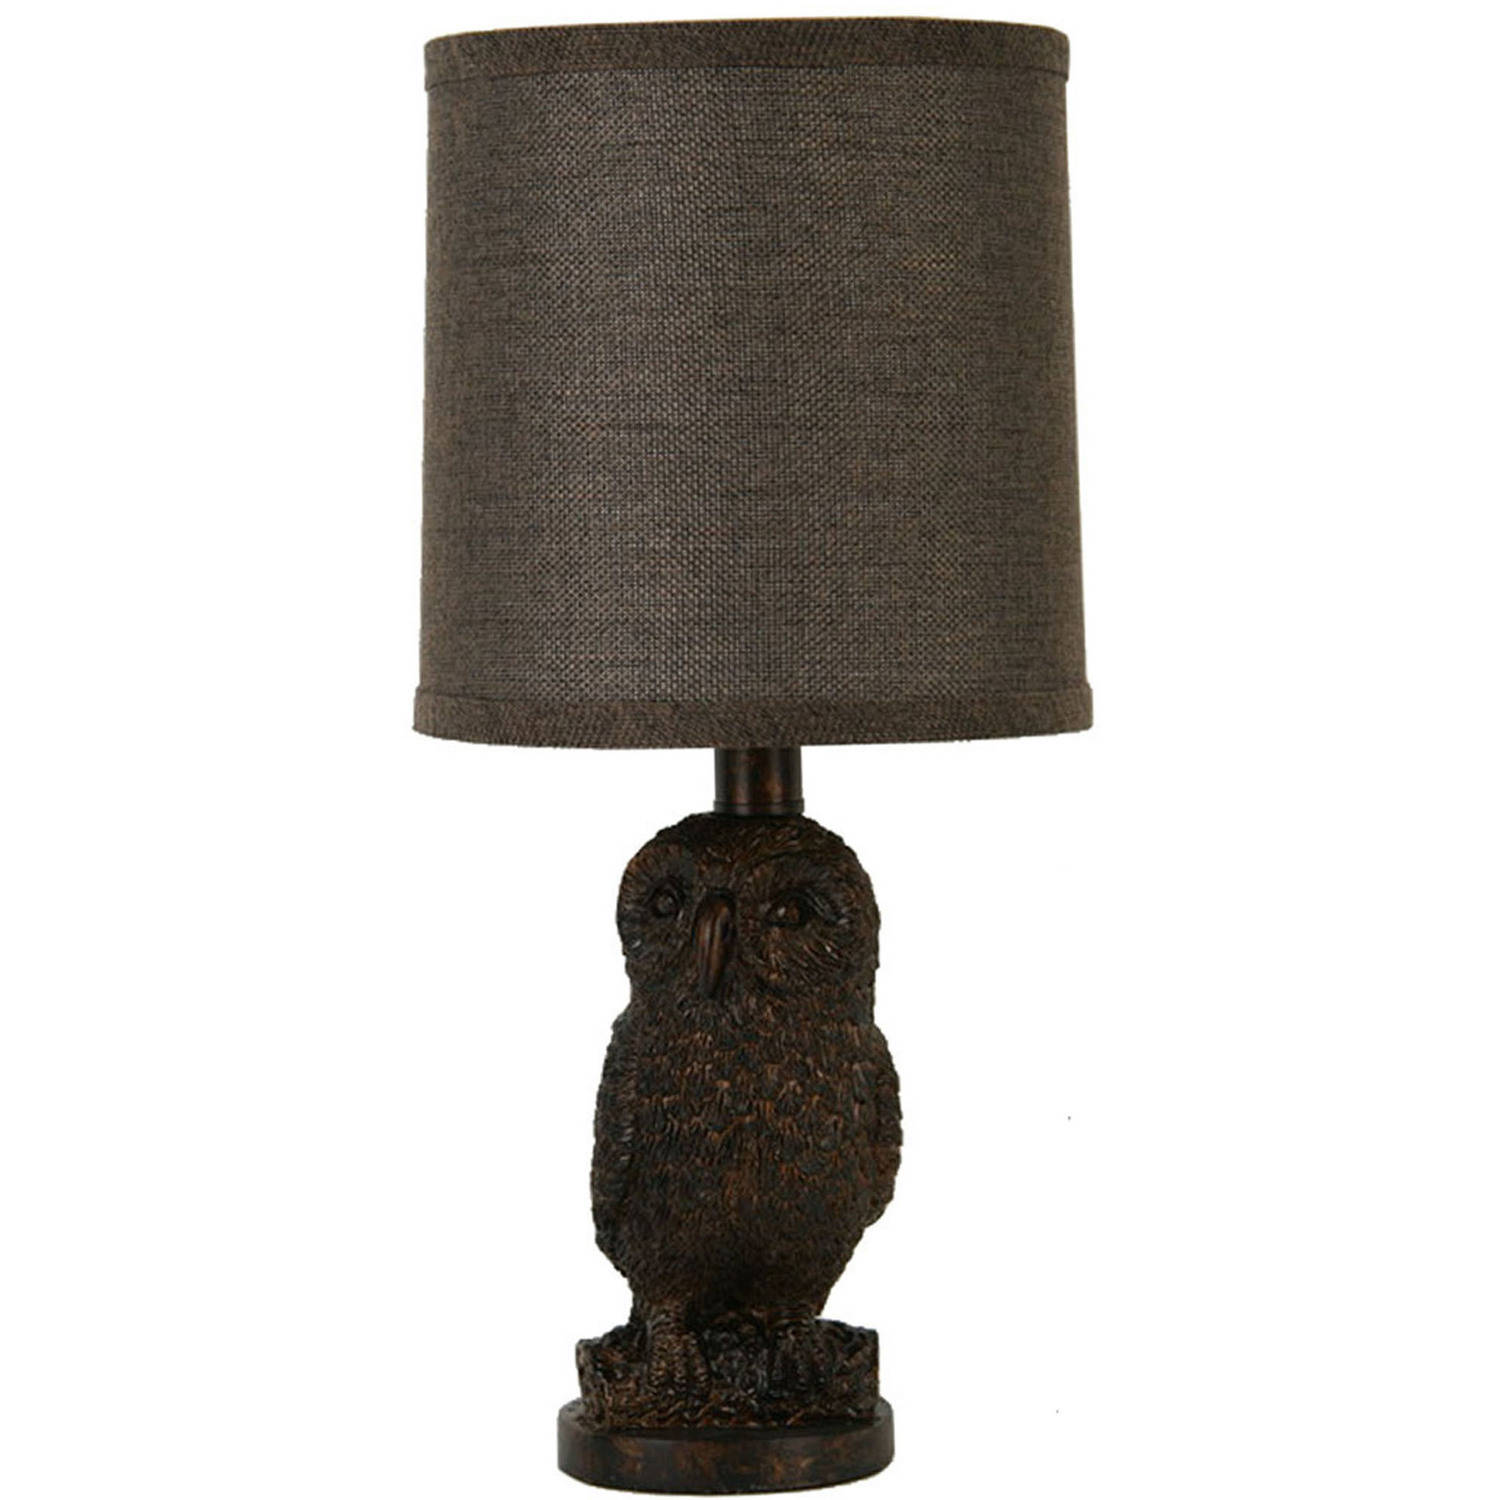 Better Homes and Gardens Owl Table Lamp with Shade by JIMCO LAMP CO.